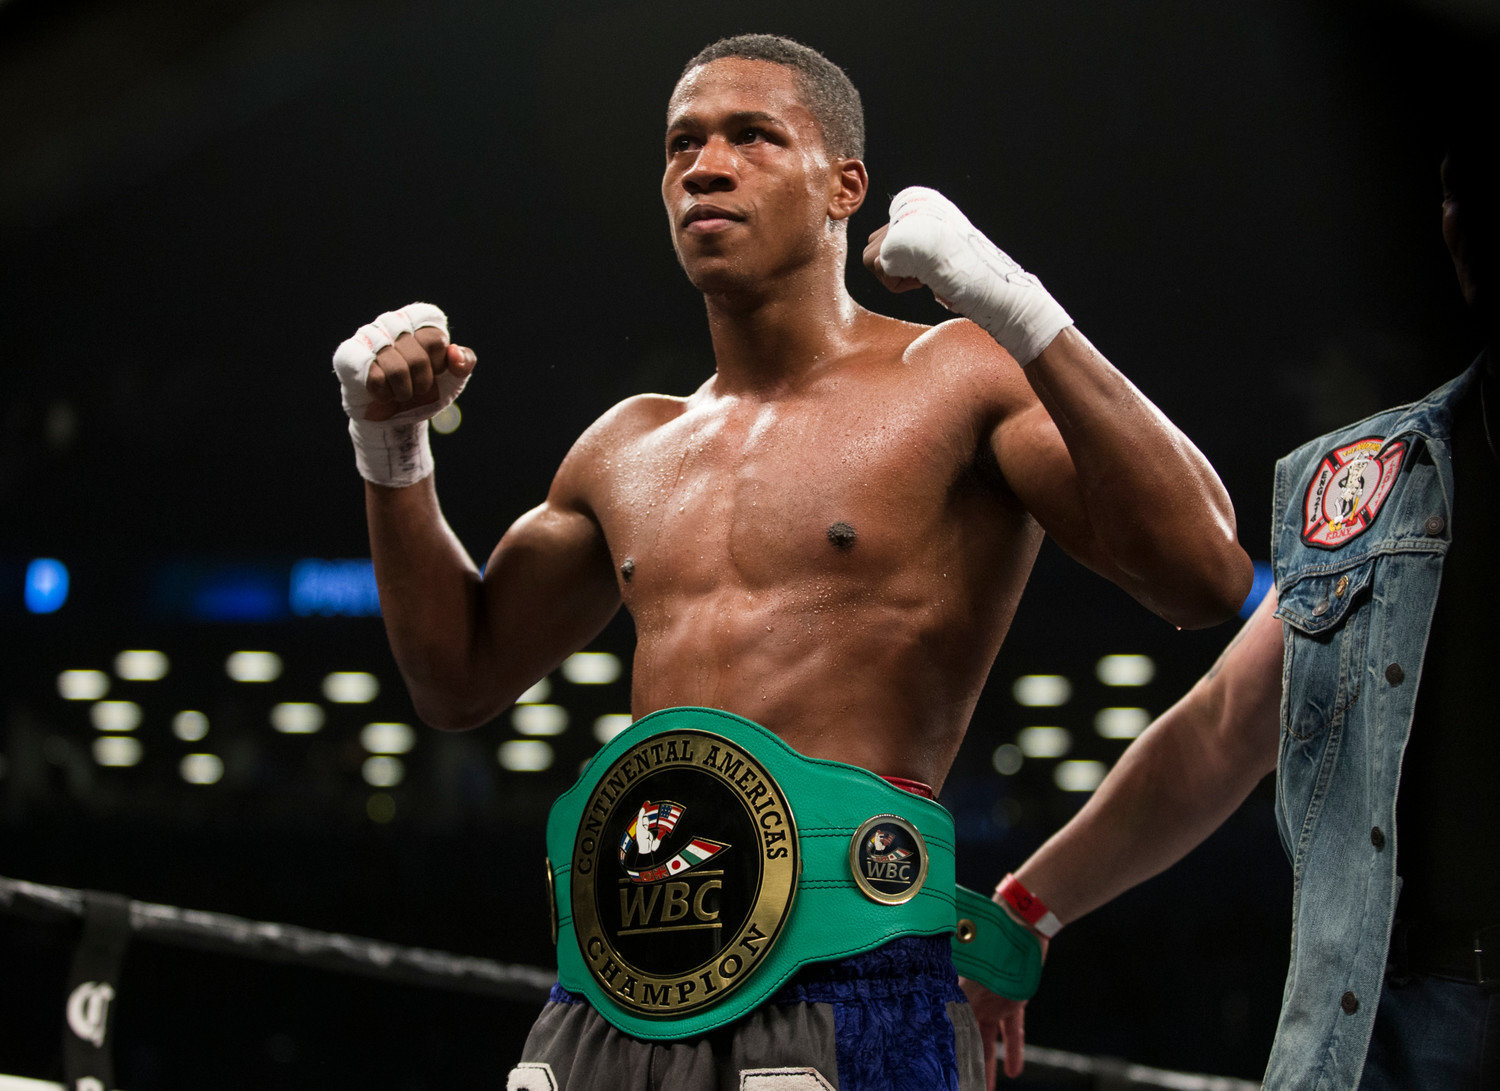 Boxer Patrick Day, in March 2018, after he successfully defended his WBC Continental Americas Super Welterweight title against Kyrone Davis, at the Barclays Center in Brooklyn before the Wilder vs. Ortiz fight.